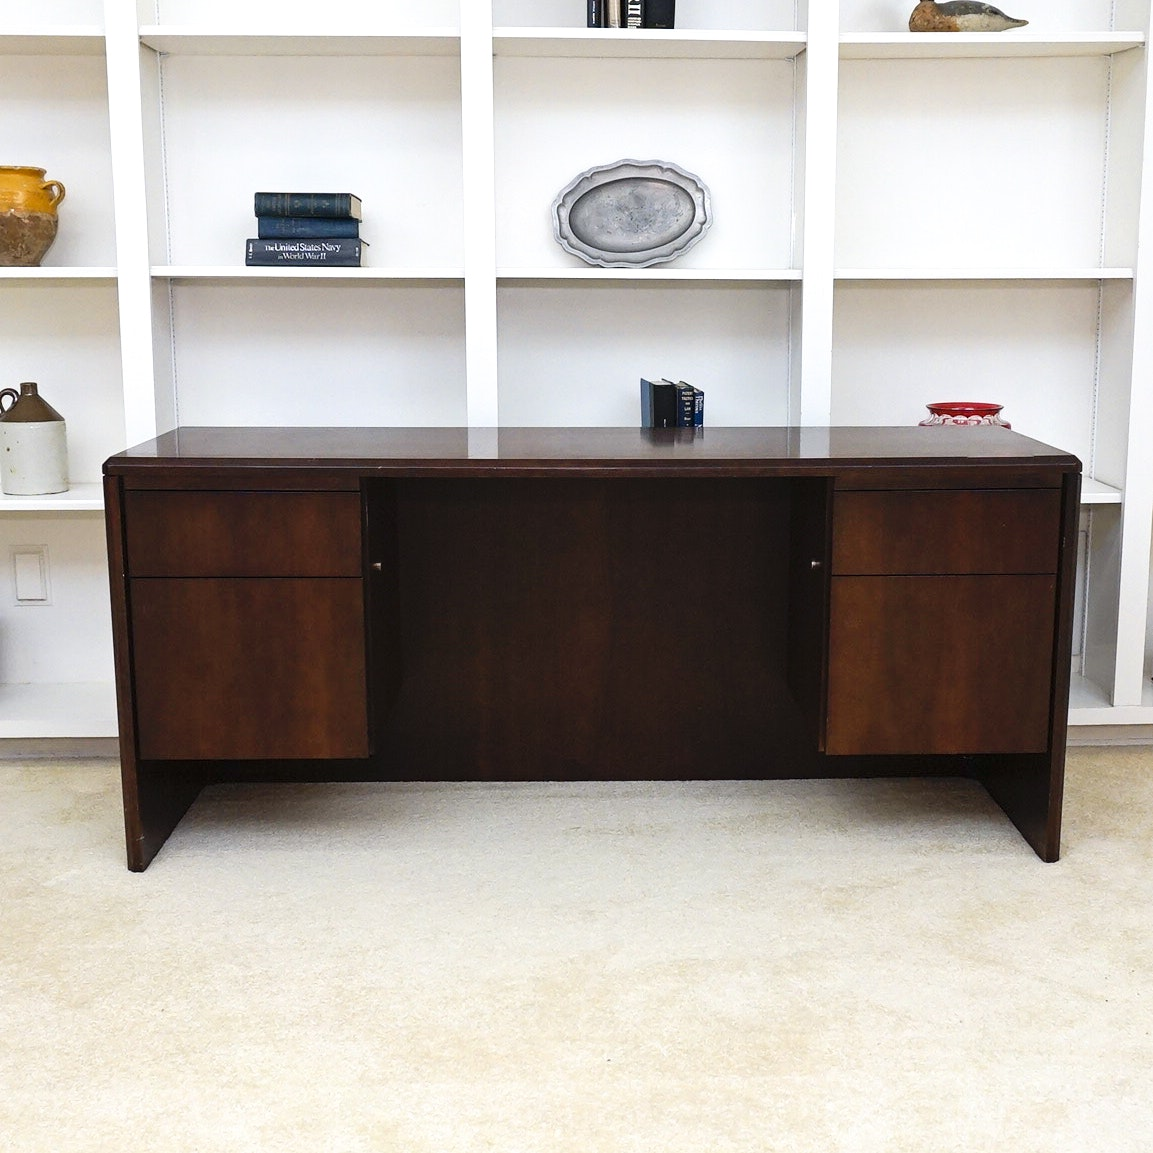 Solid Wood Desk By Indiana Desk Company ...